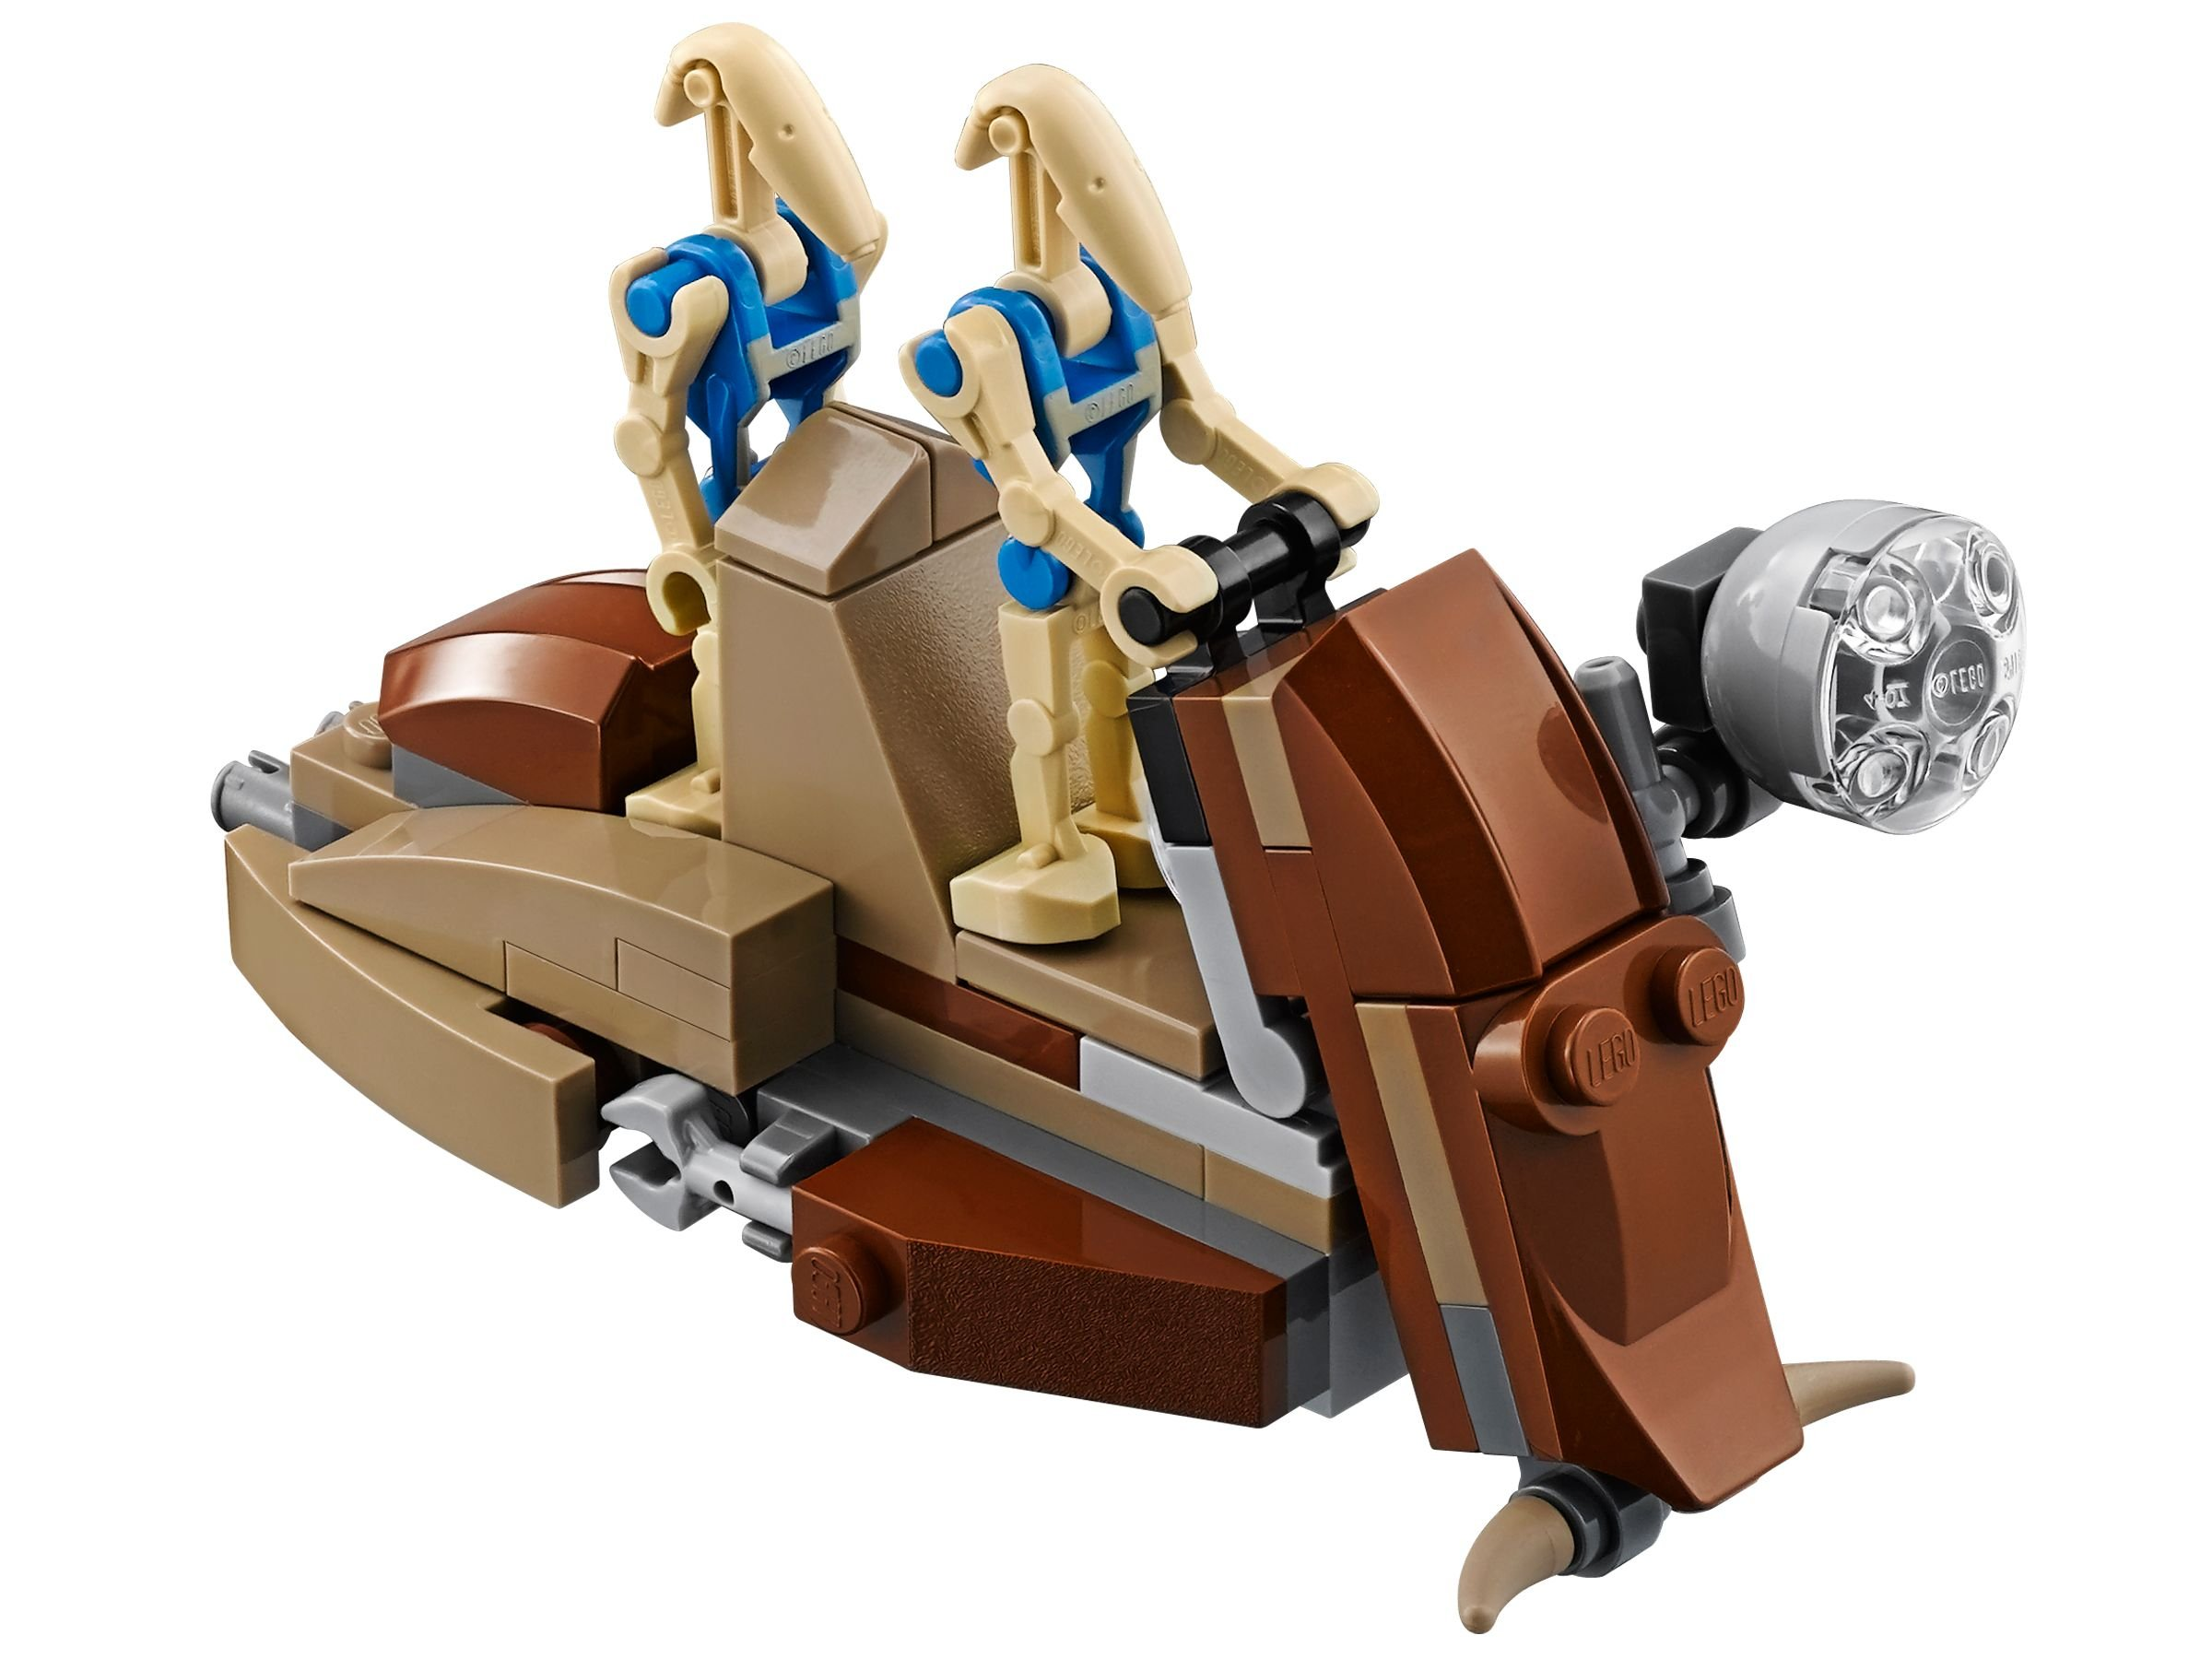 LEGO Star Wars 75086 Battle Droid™ Troop Carrier LEGO_75086_alt5.jpg